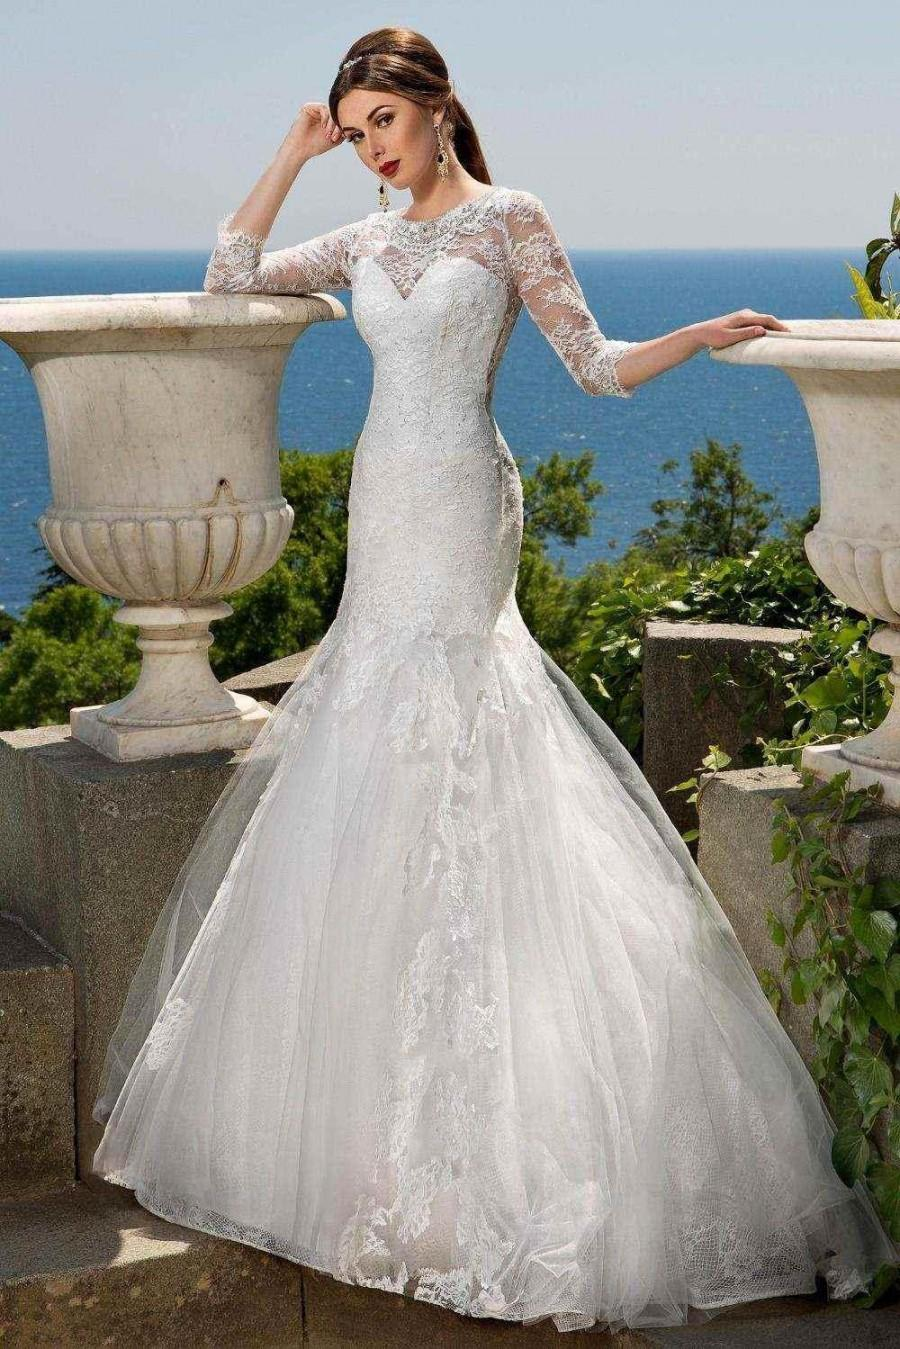 Stunning 3 4 Long Sleeve Mermaid Wedding Dresses Sheer Illusion Full Lace App